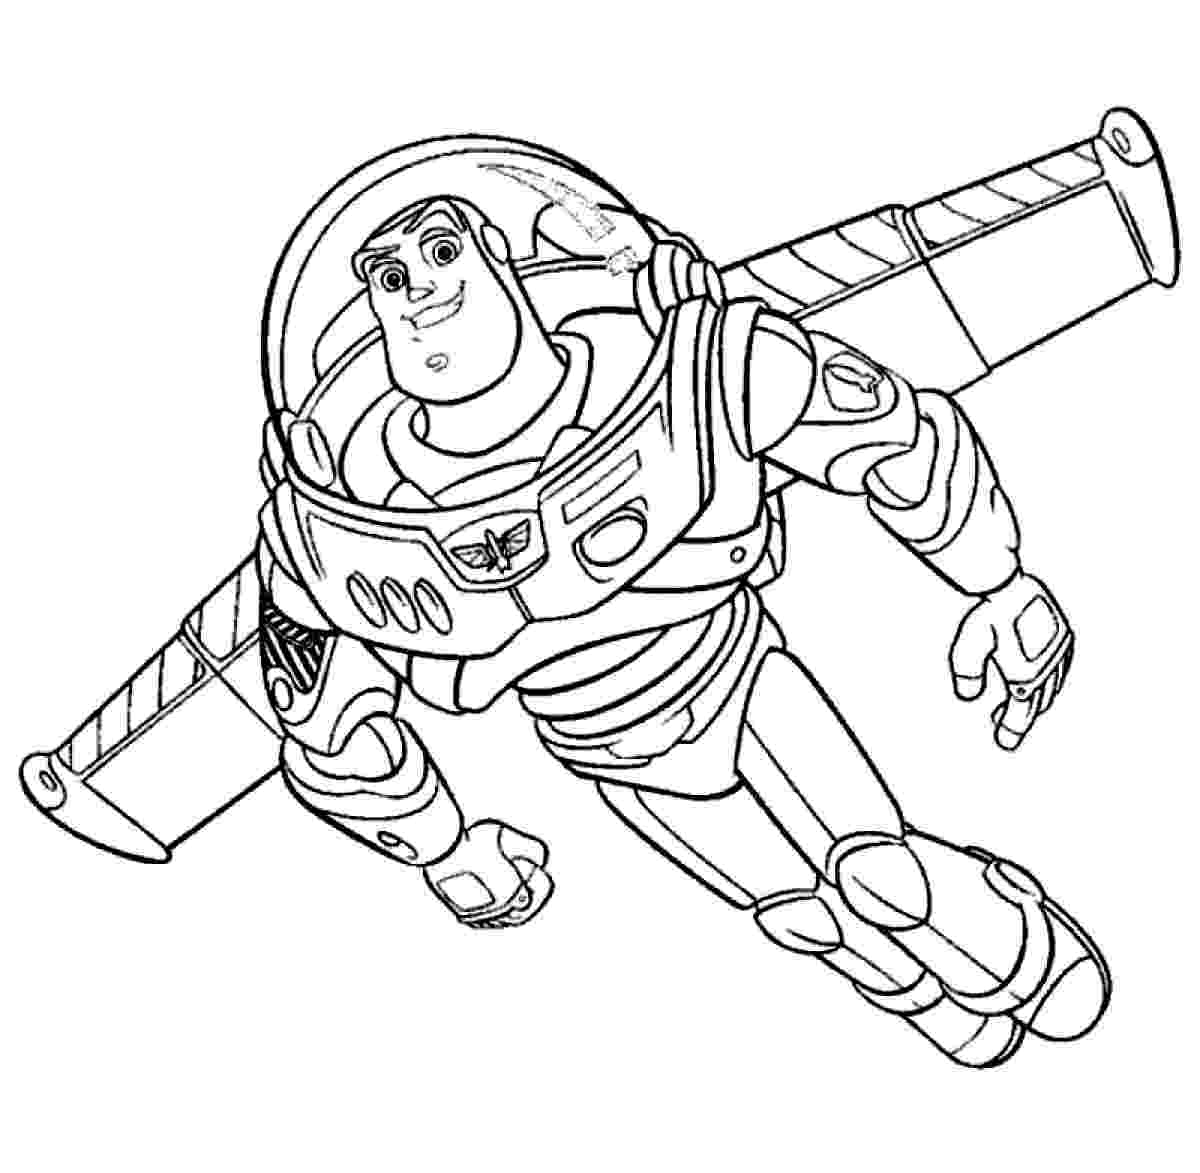 buzz coloring pages buzz lightyear coloring pages coloring pages to print coloring buzz pages